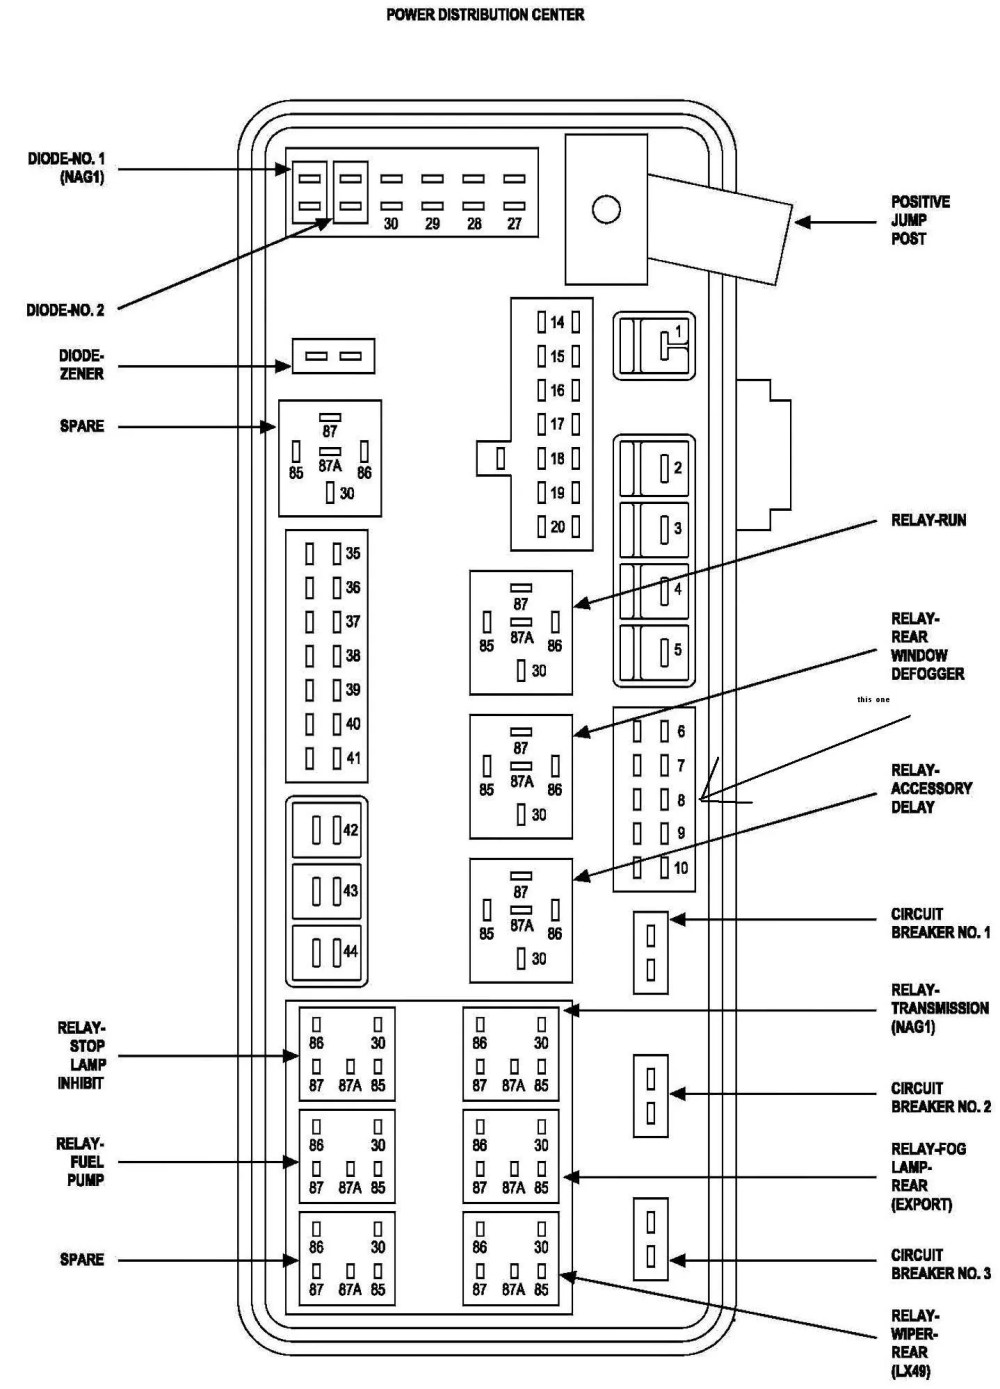 medium resolution of fuse box diagram for 2007 buick rainier schematic diagram2007 buick rainier wiring diagram wiring diagram 98